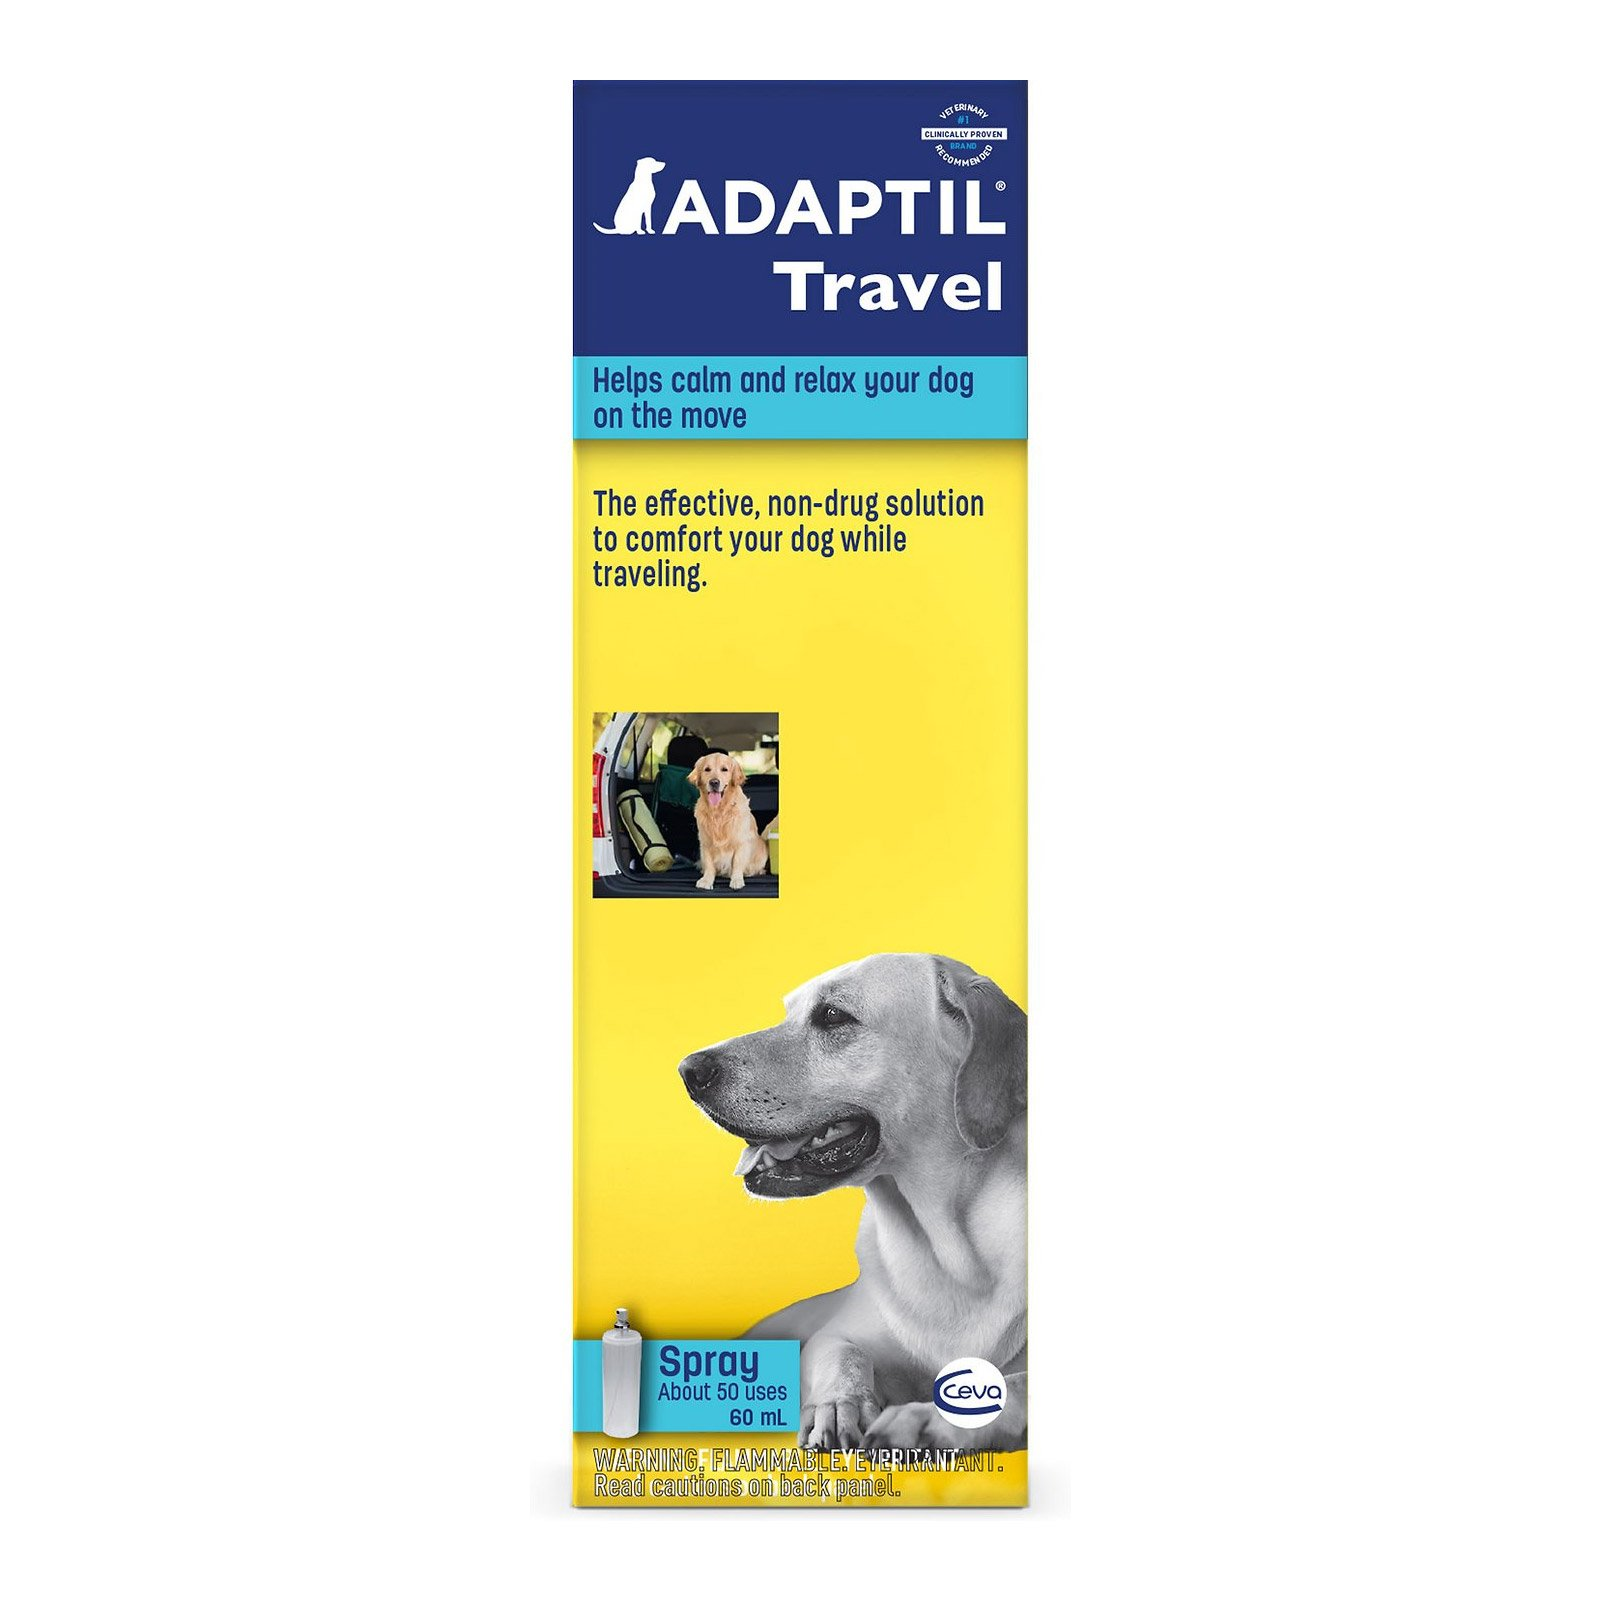 DAP Spray for Dog Supplies